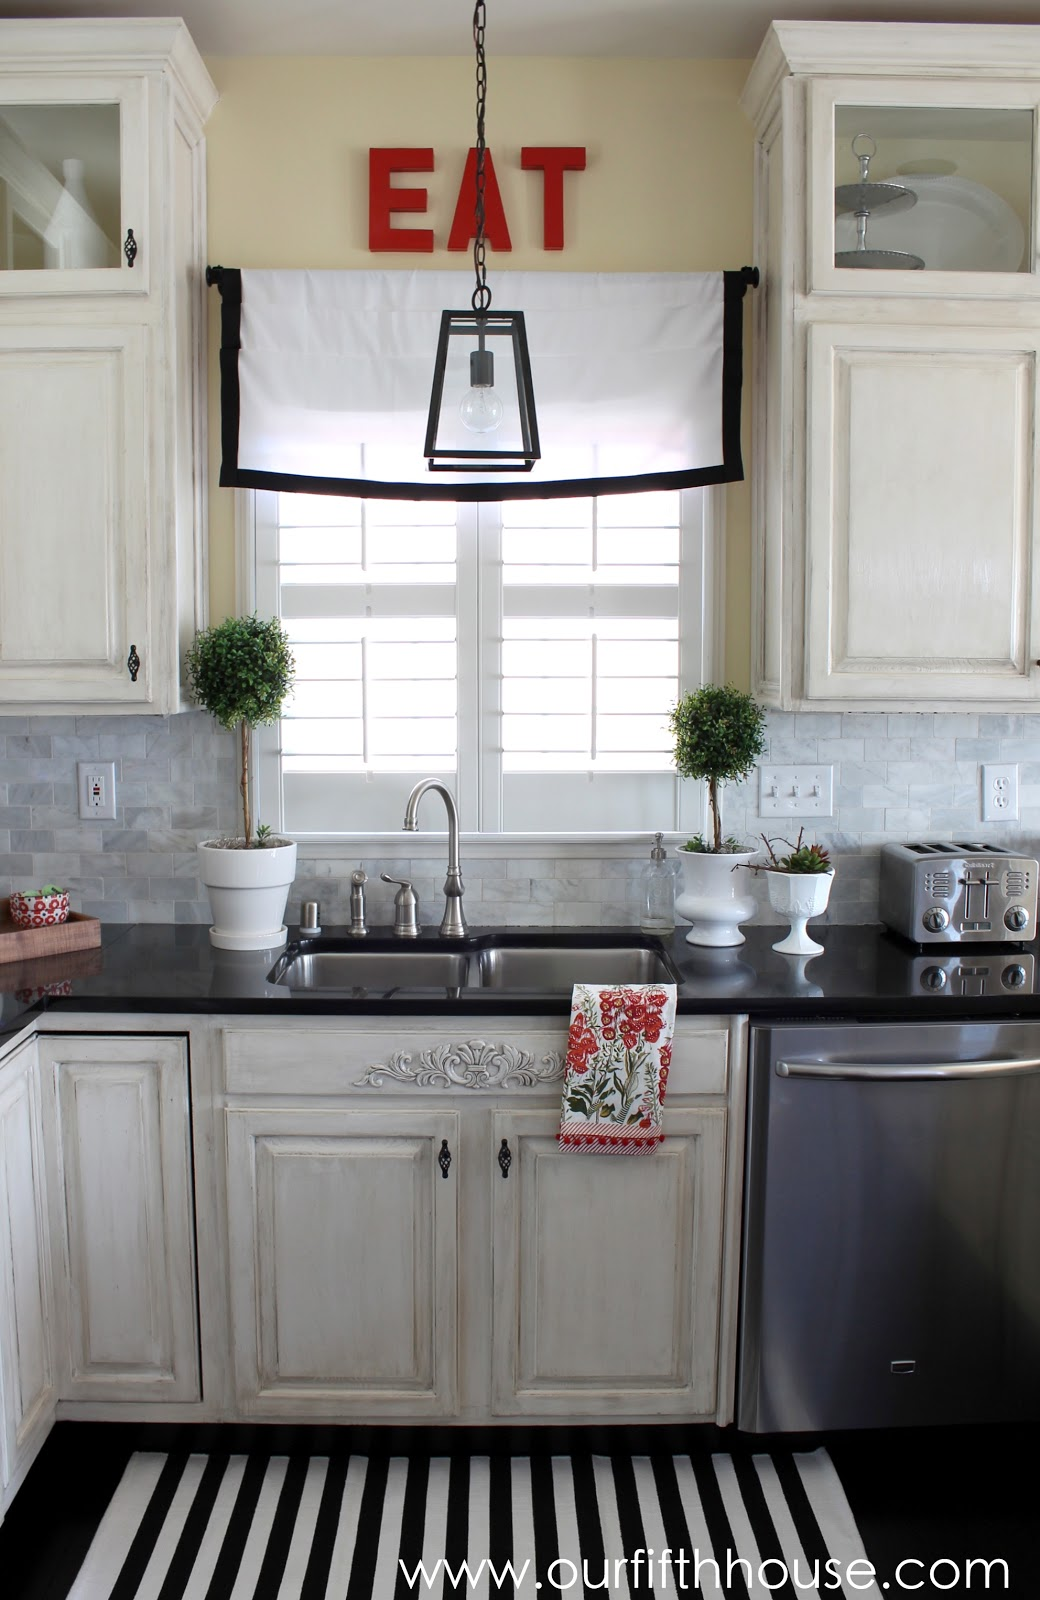 Our Fifth House: New Kitchen Lighting - A Lantern Over the ...